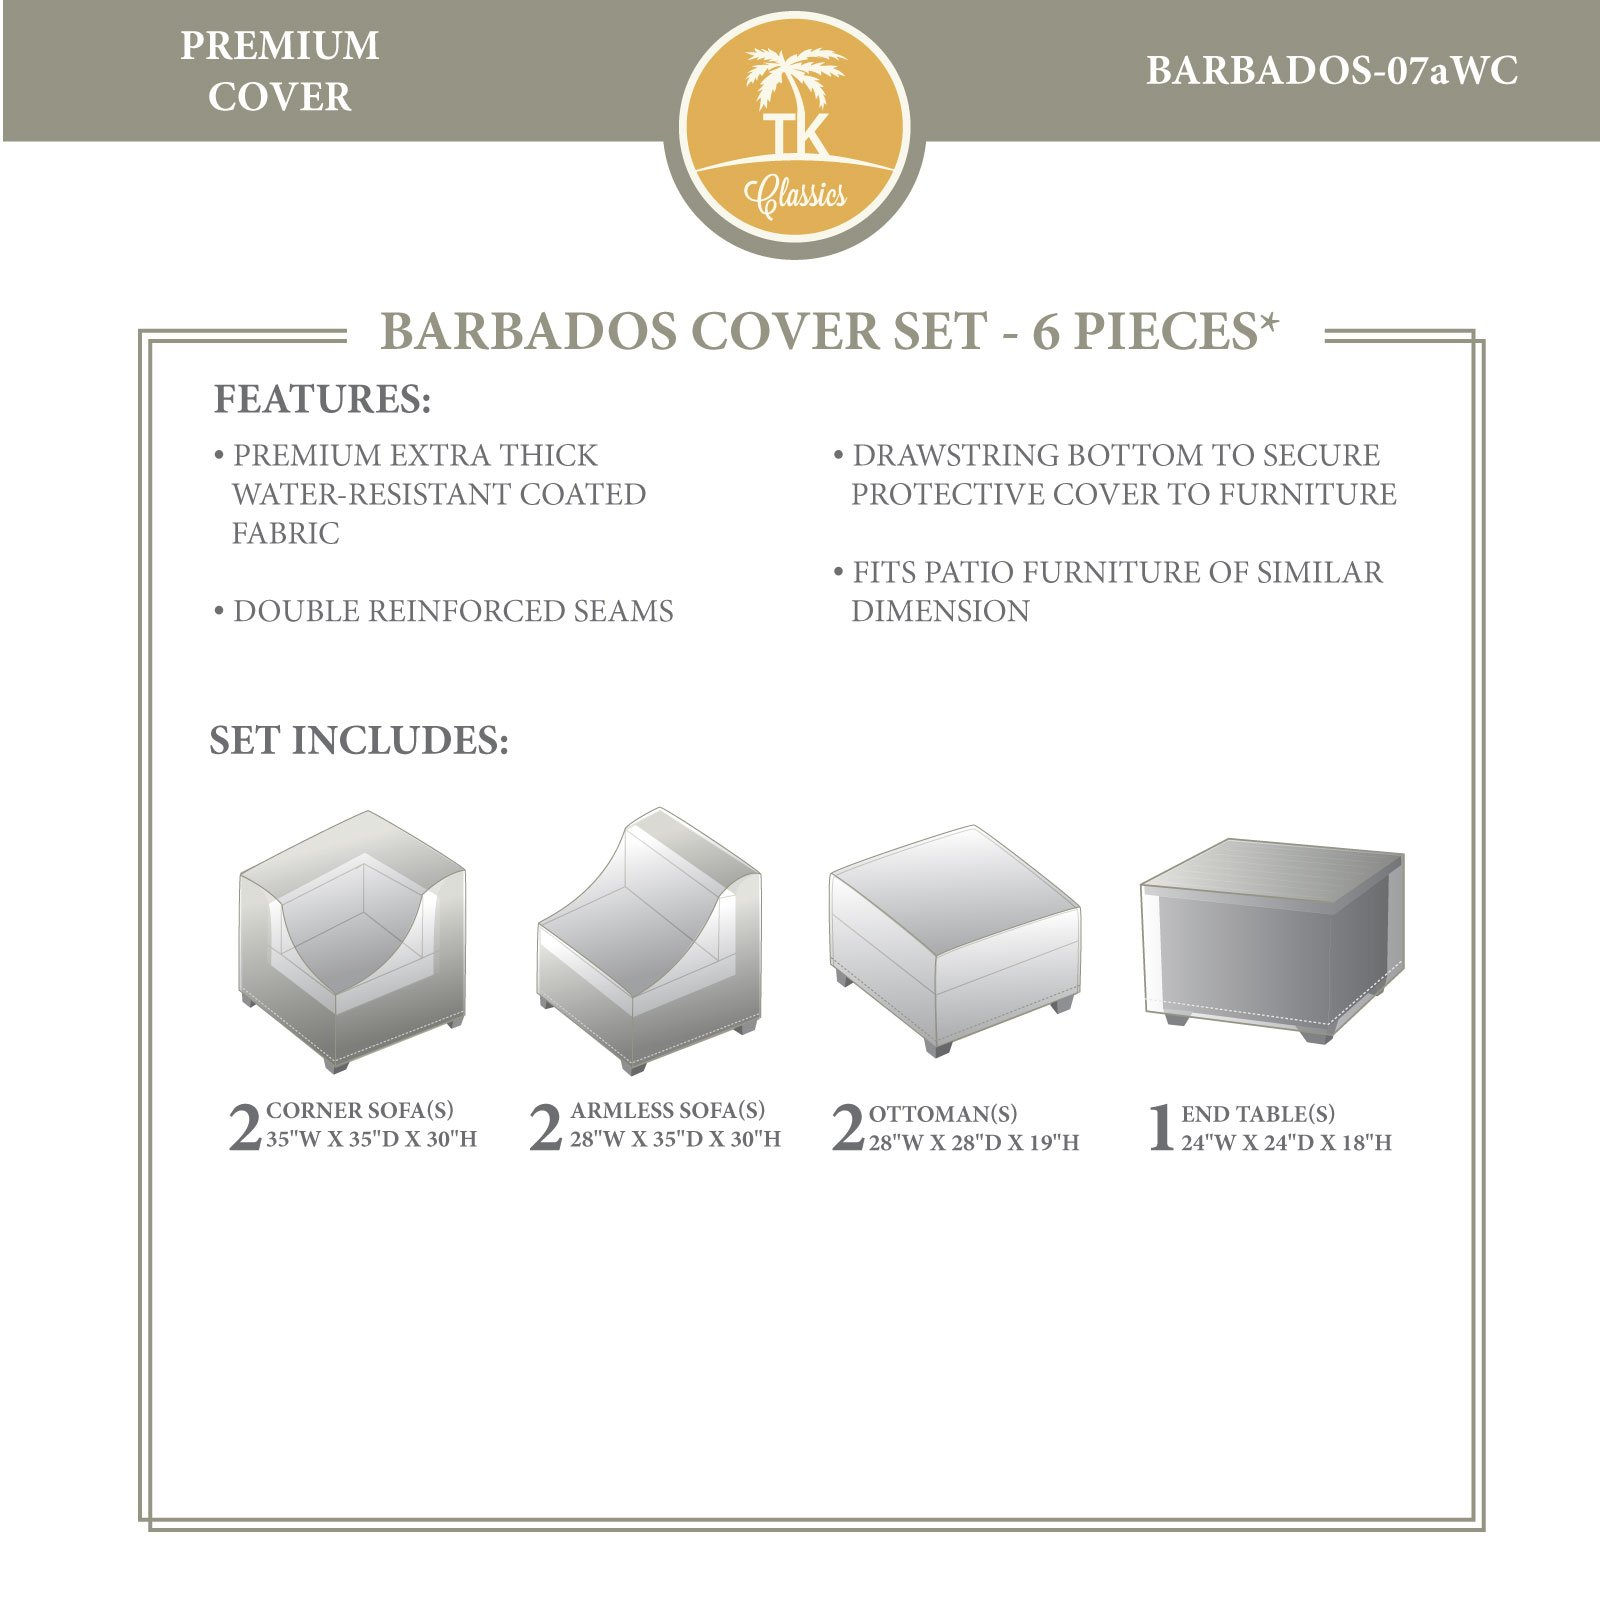 TK Classics BARBADOS-07aWC Barbados Winter Cover Set